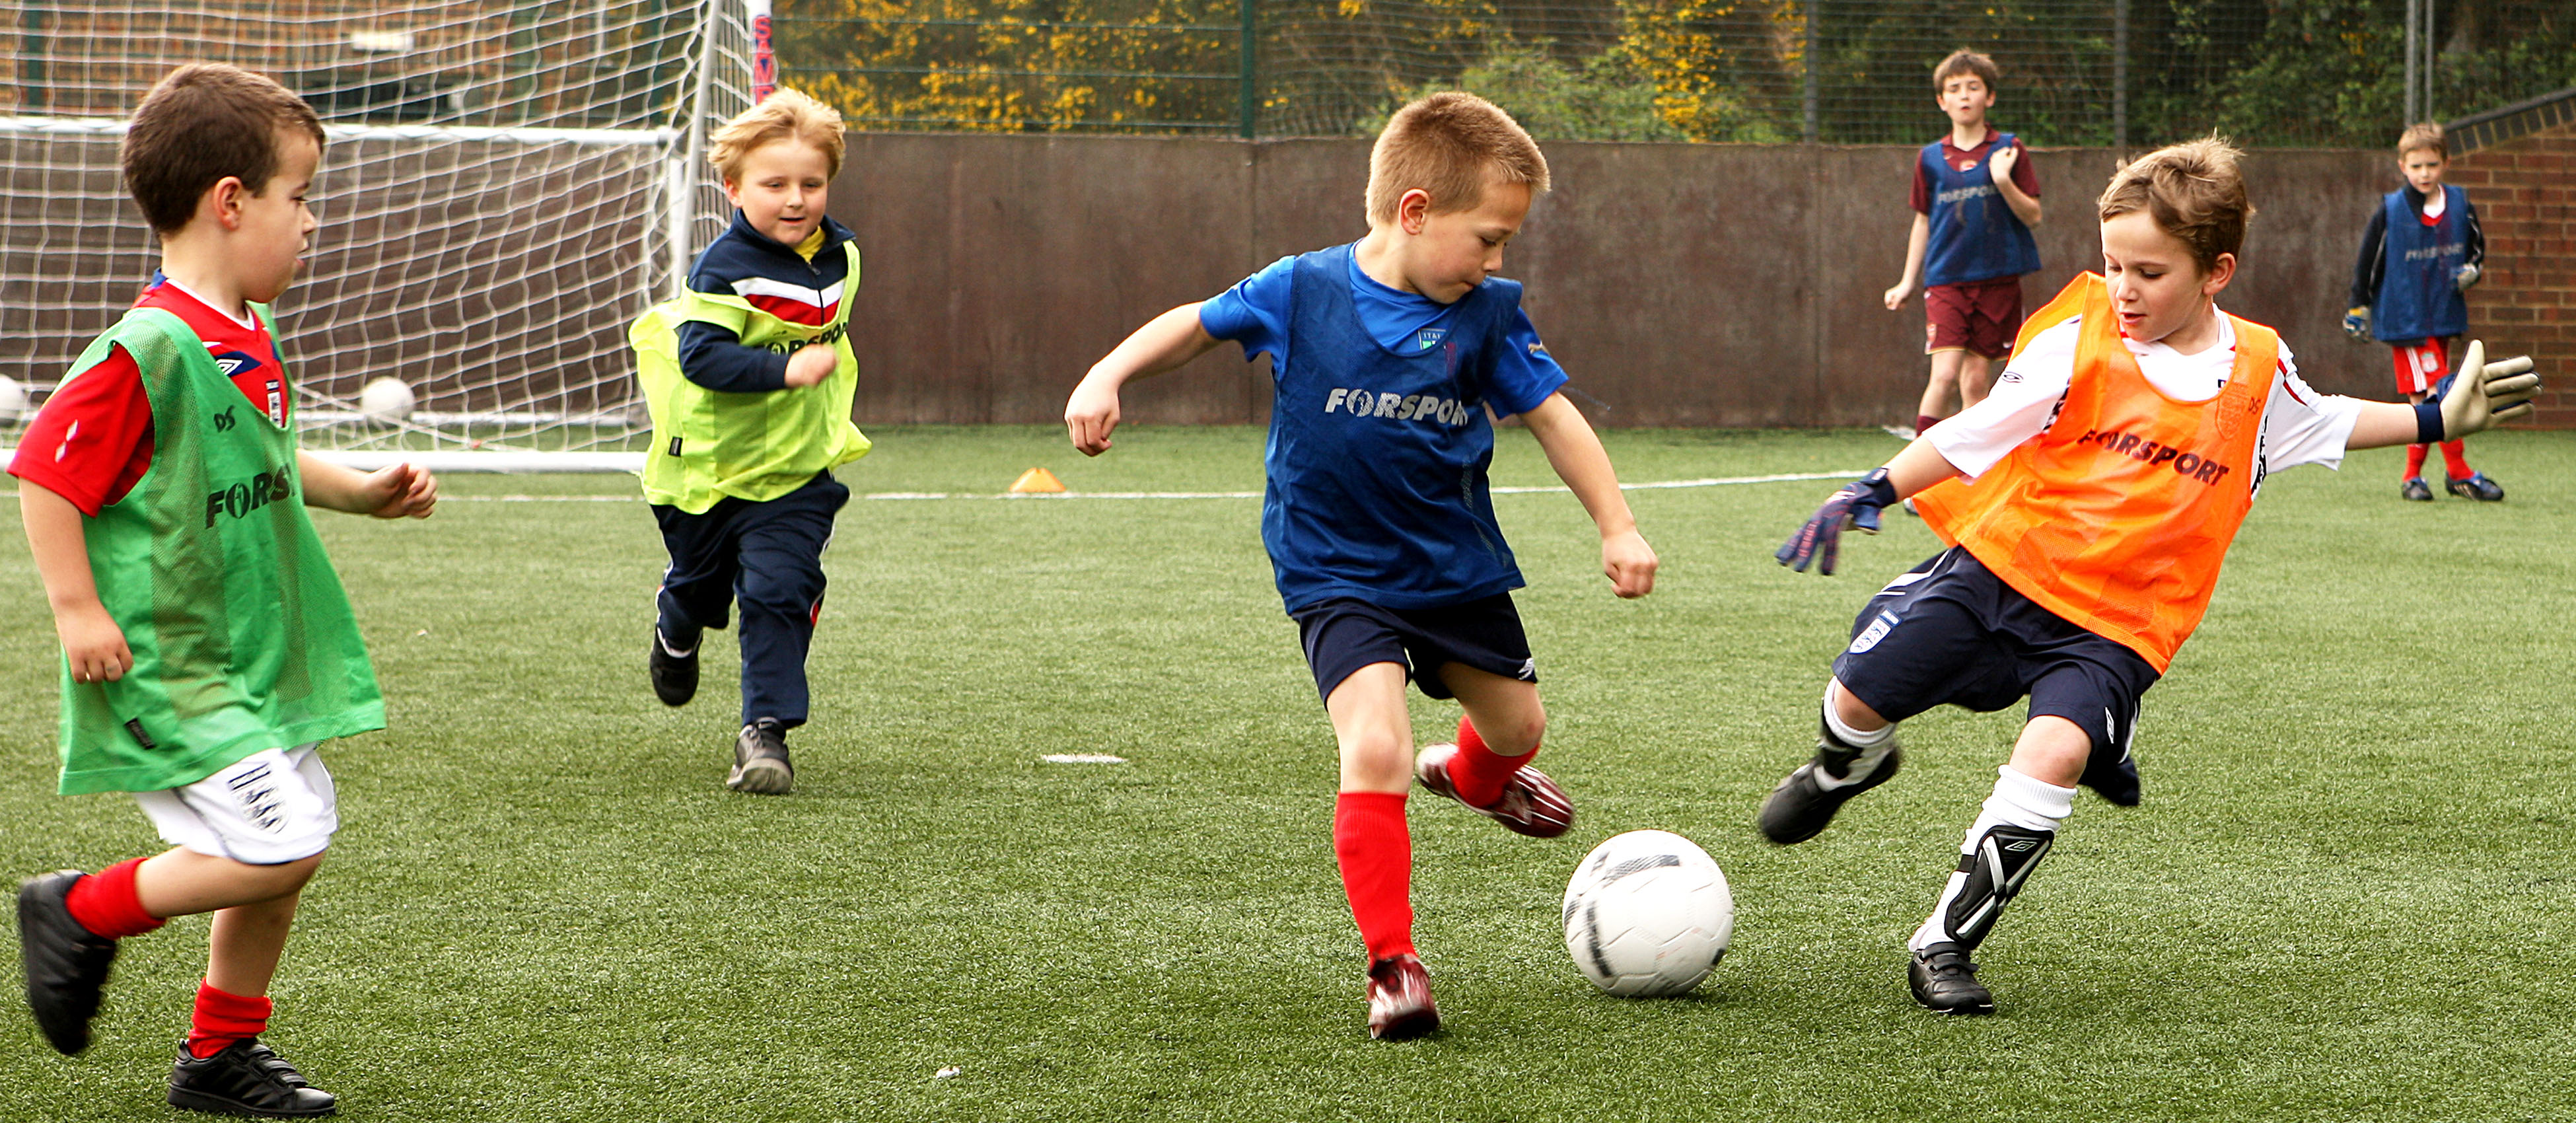 Kids aged 4-10 playing football at an SCL Saturday Soccer venue.